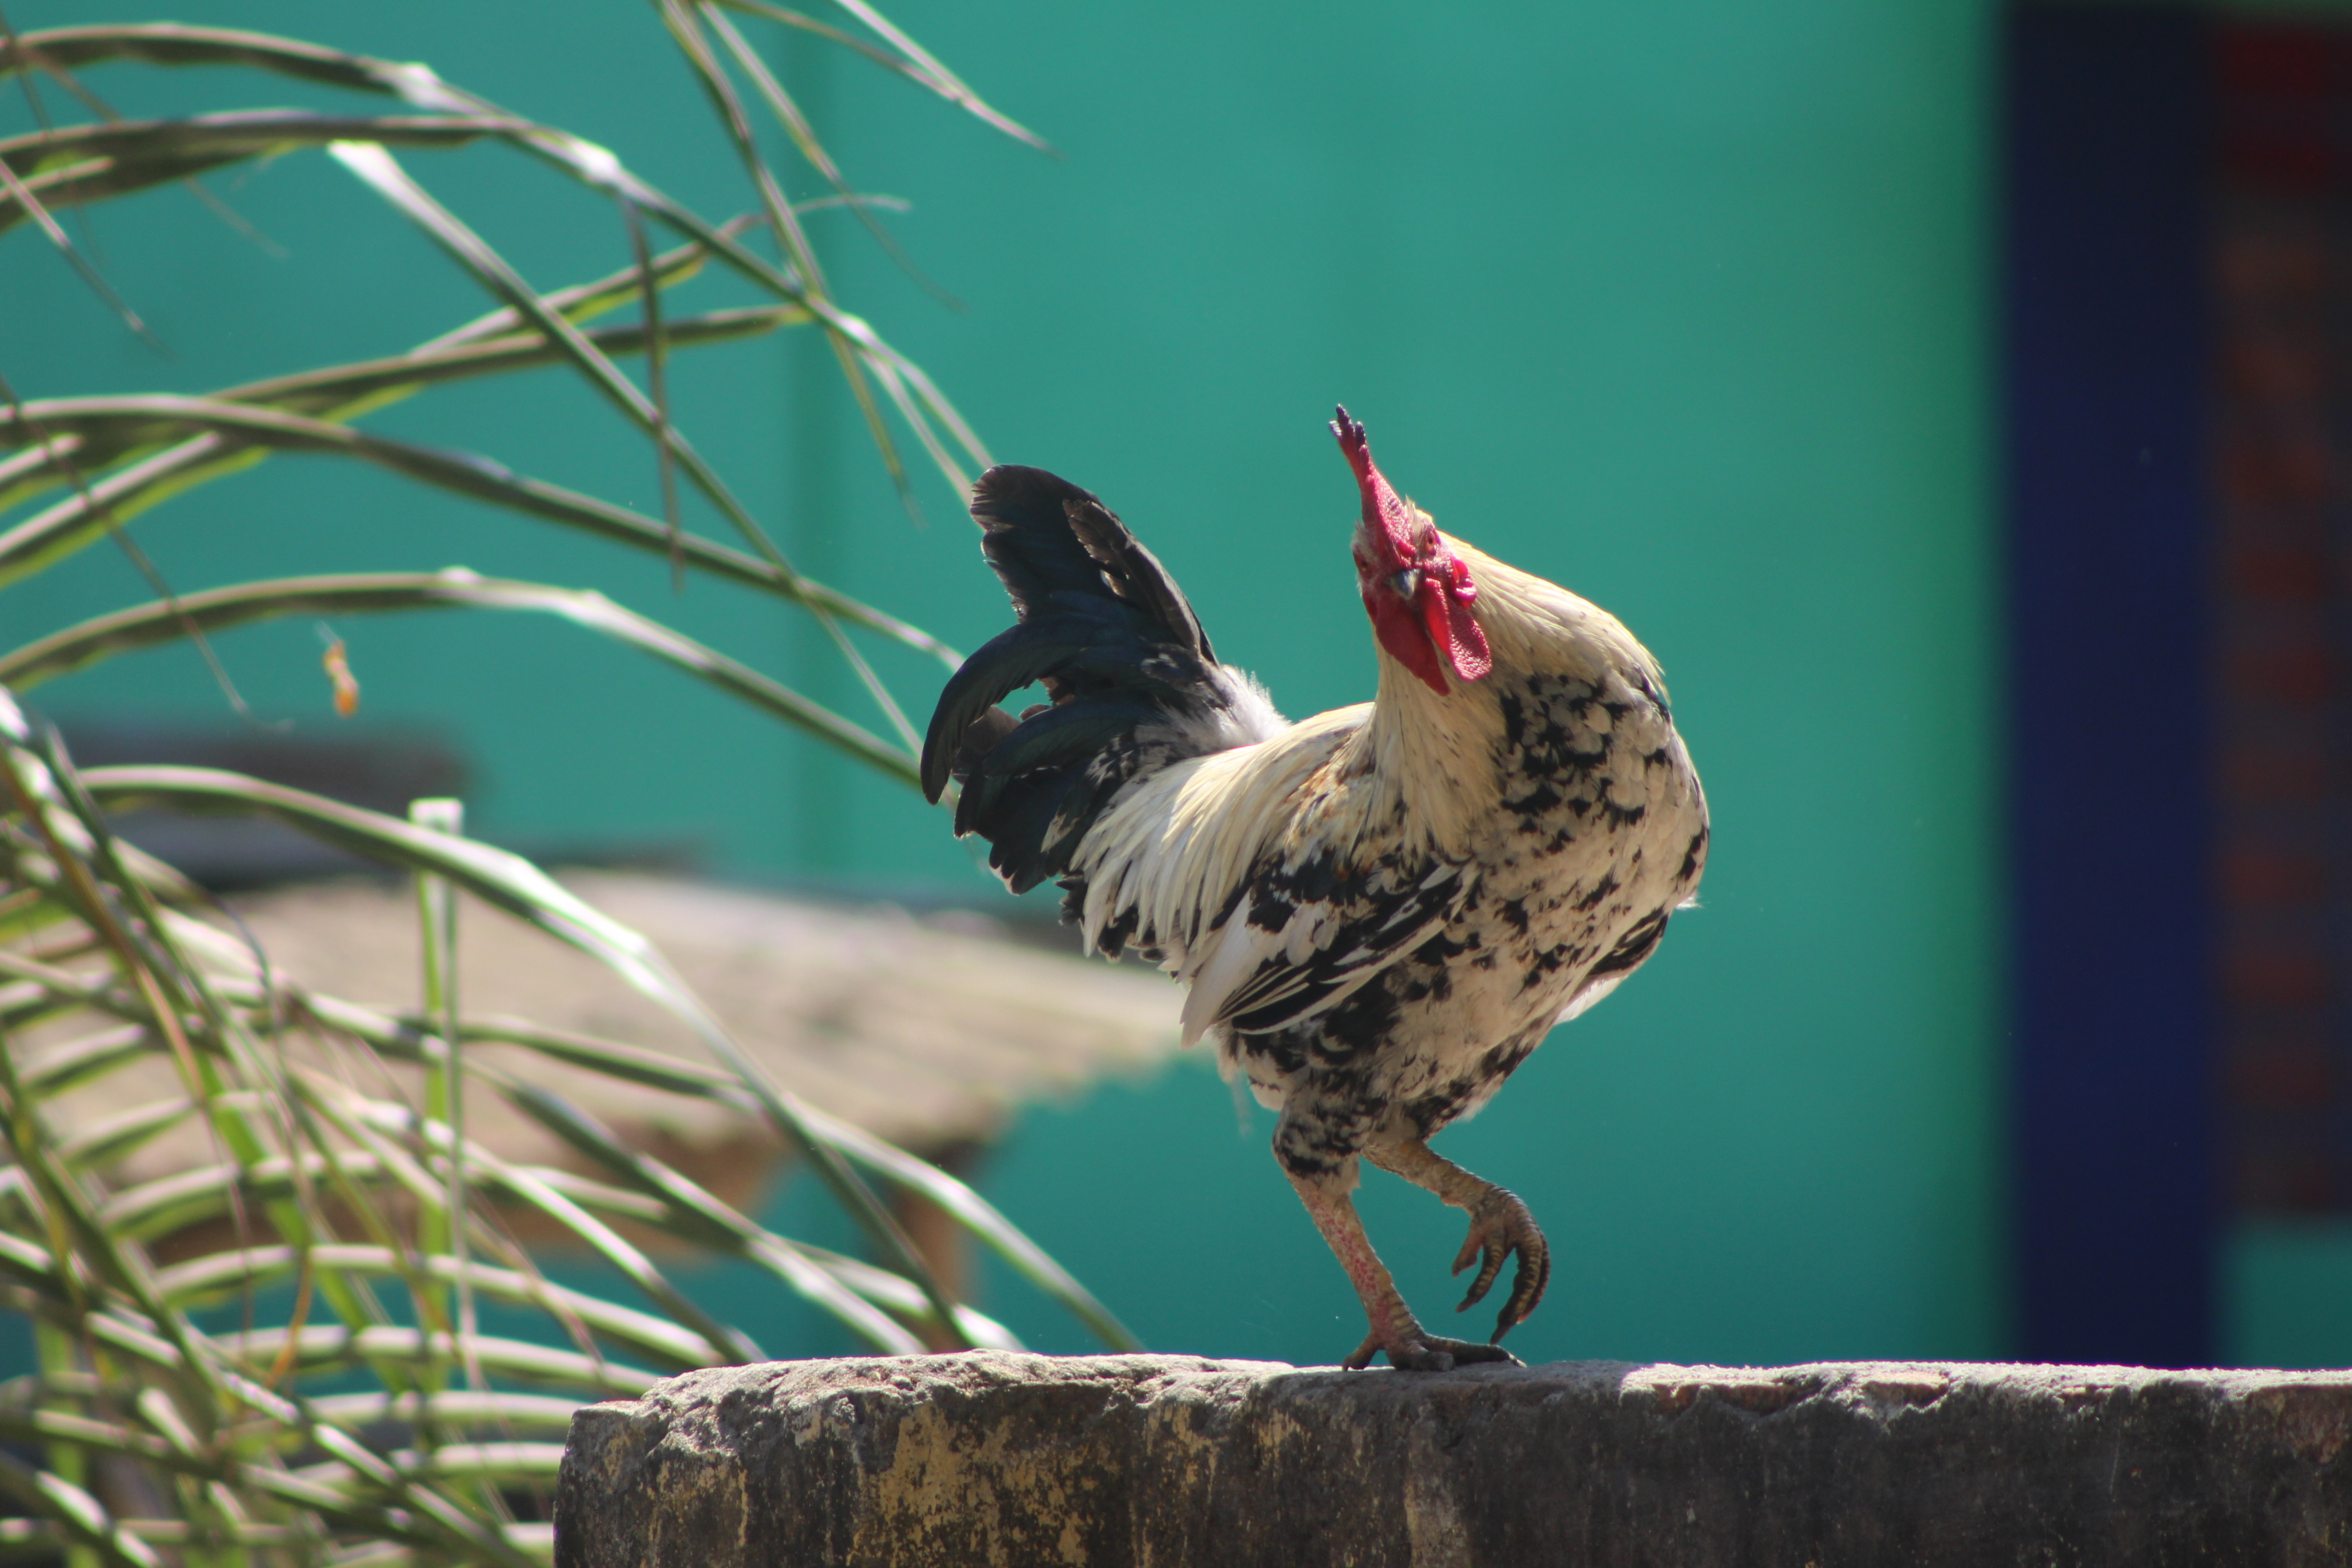 white black and brown rooster on brown wooden post during daytime